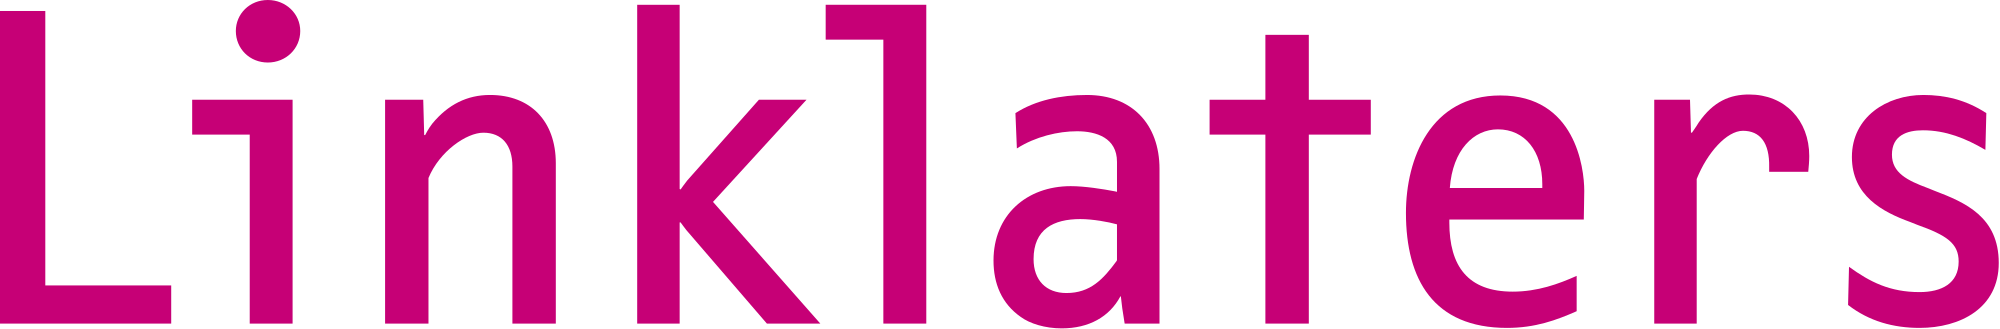 Linklaters Logo - File:Linklaters.svg - Wikimedia Commons